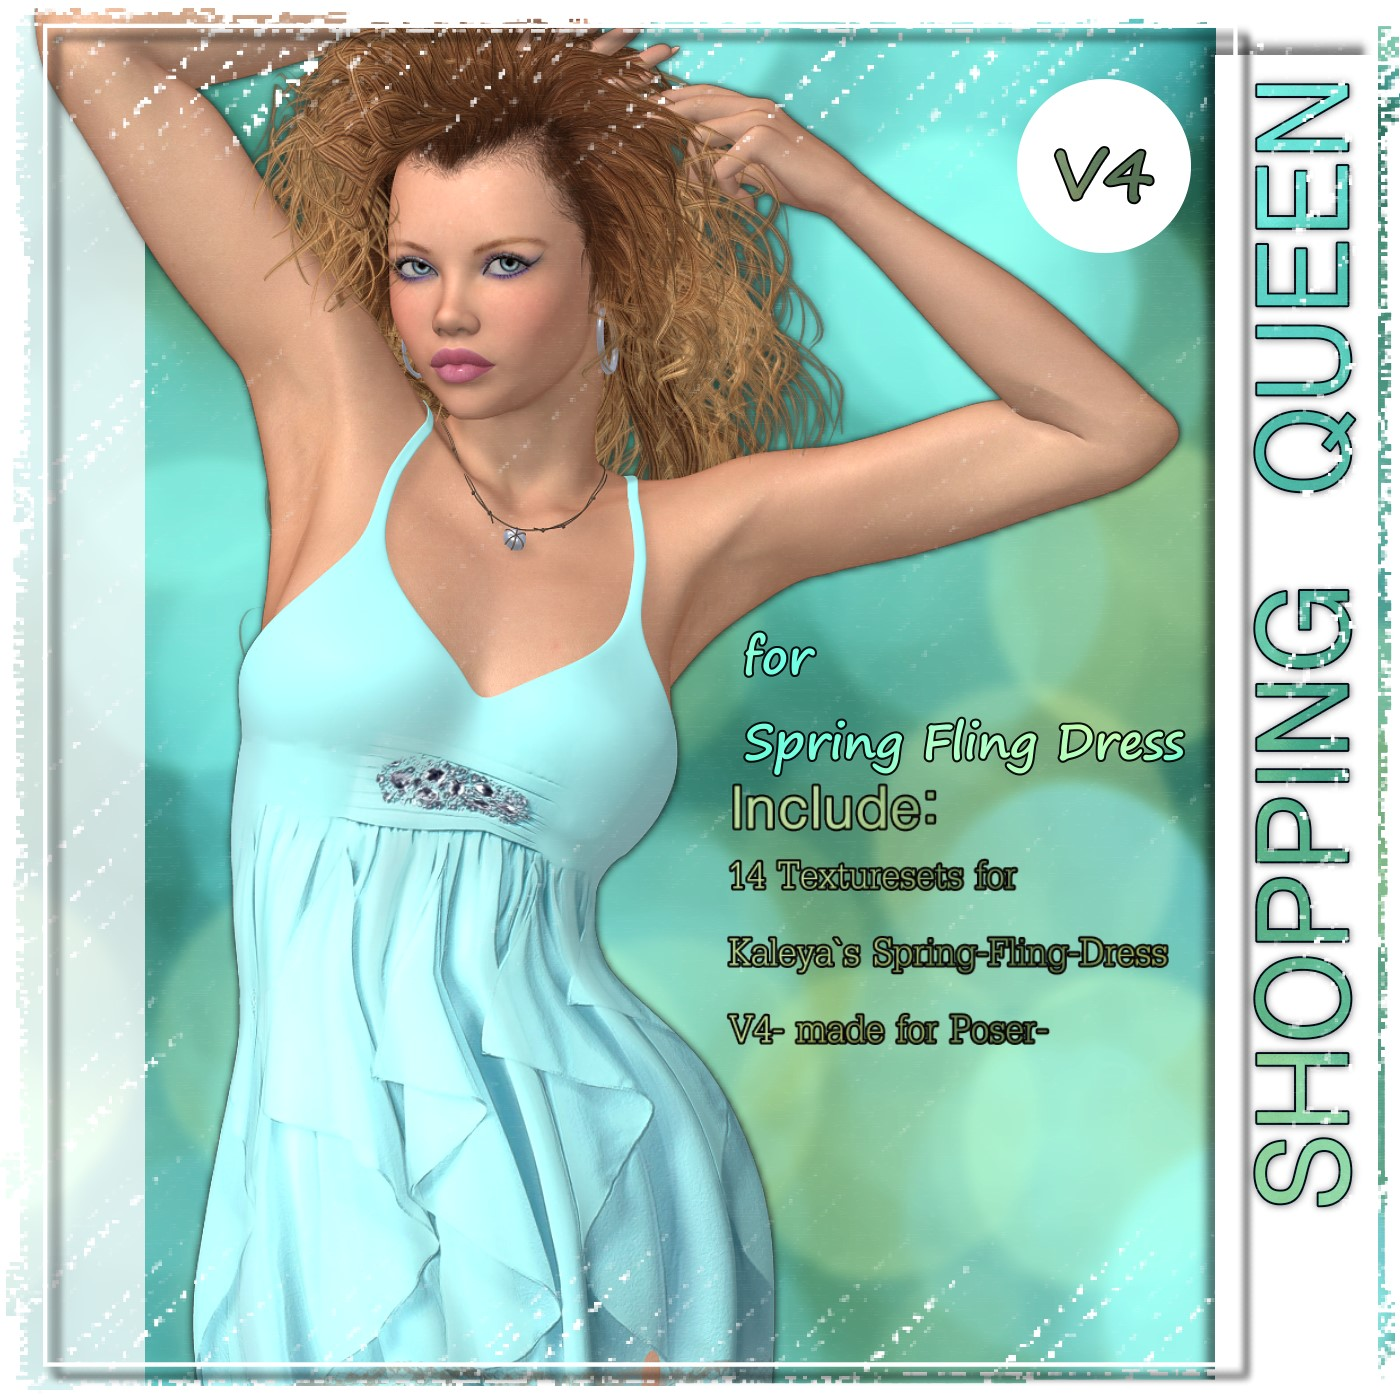 Shopping Queen: for Spring-Fling Dress V4